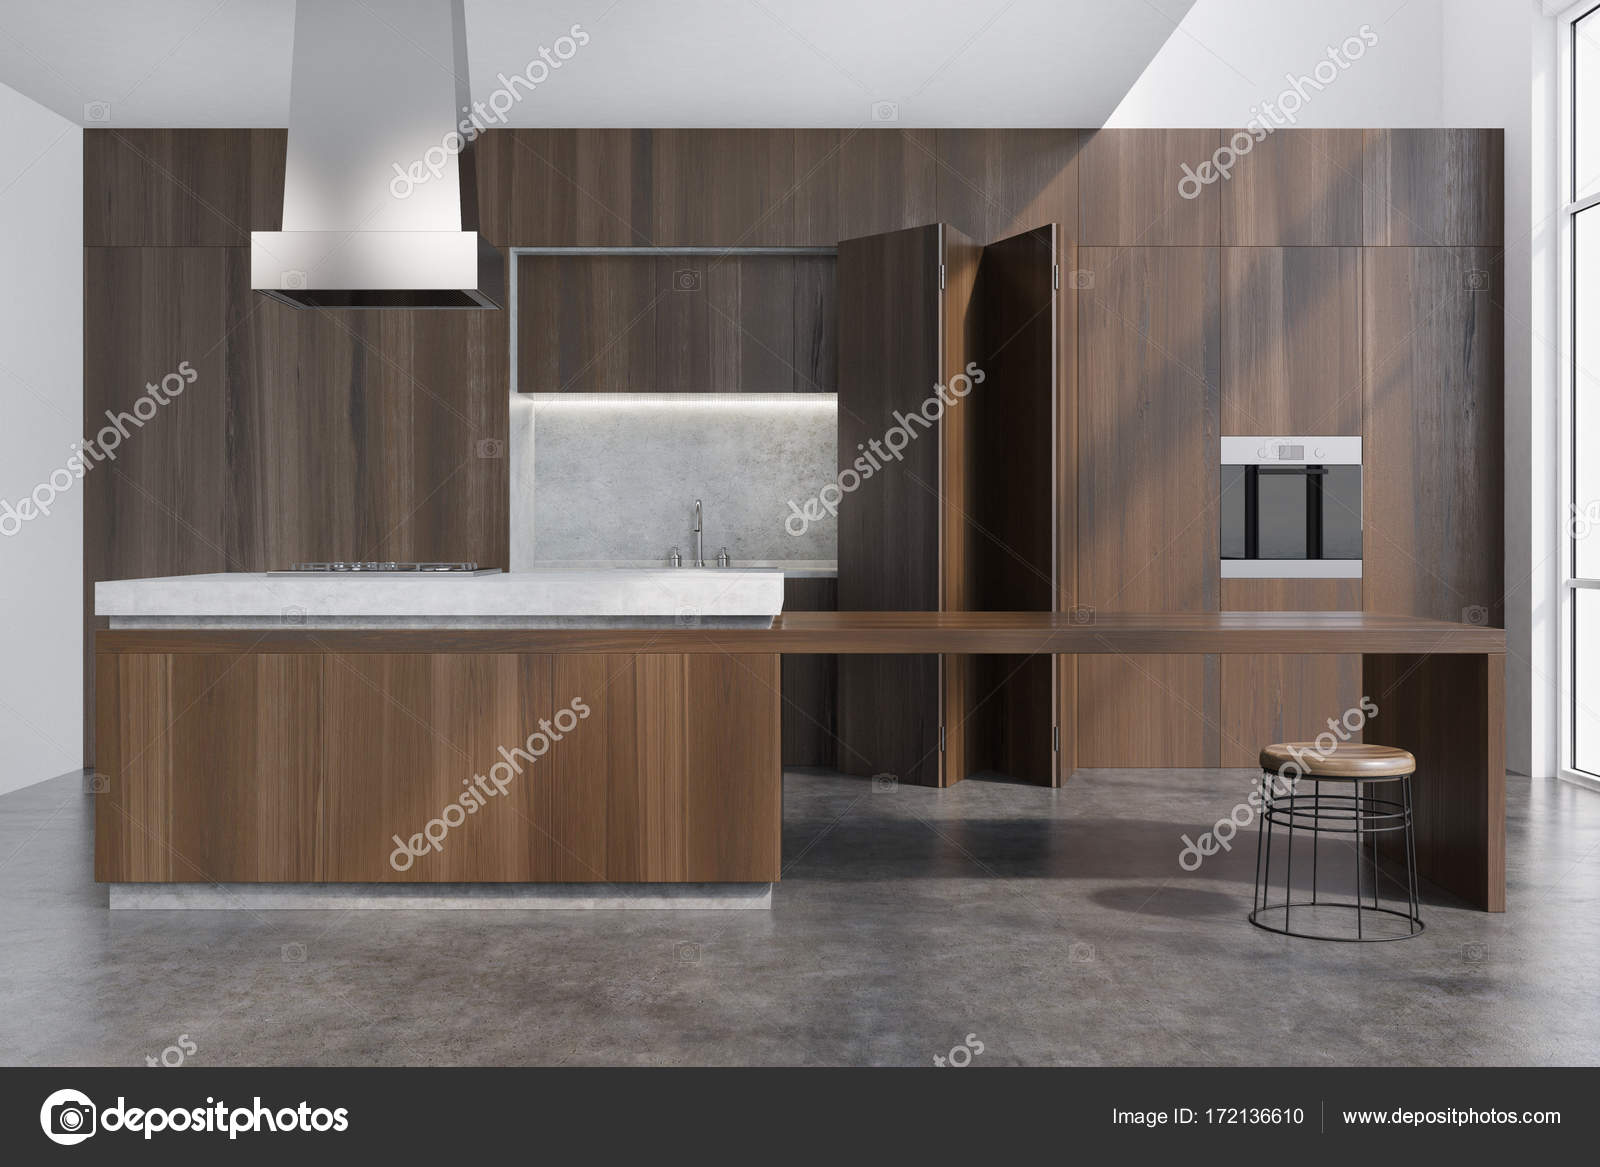 Dark Wooden Dining Room With A Bar Stock Photo